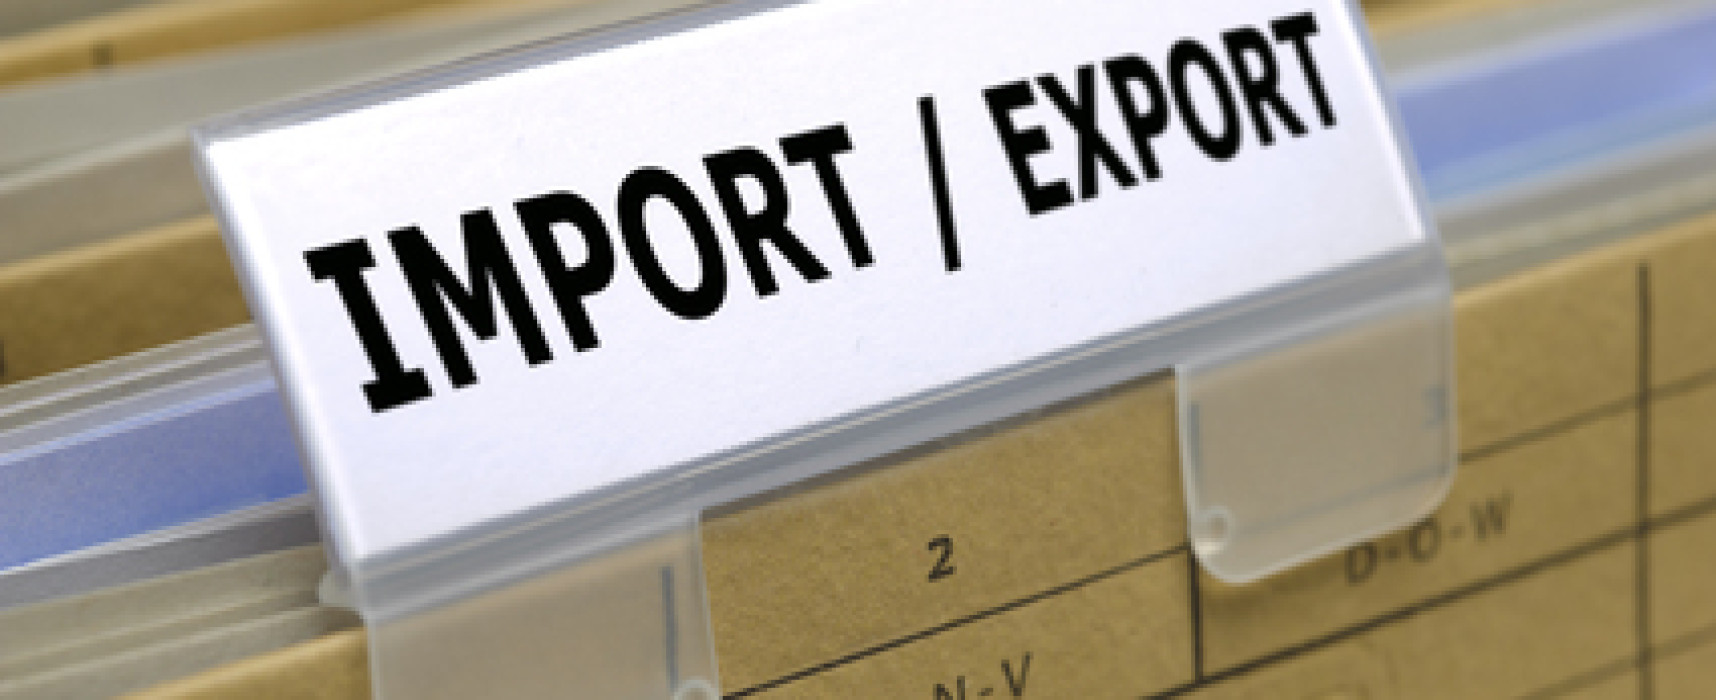 Get the importing facts right and know what to do